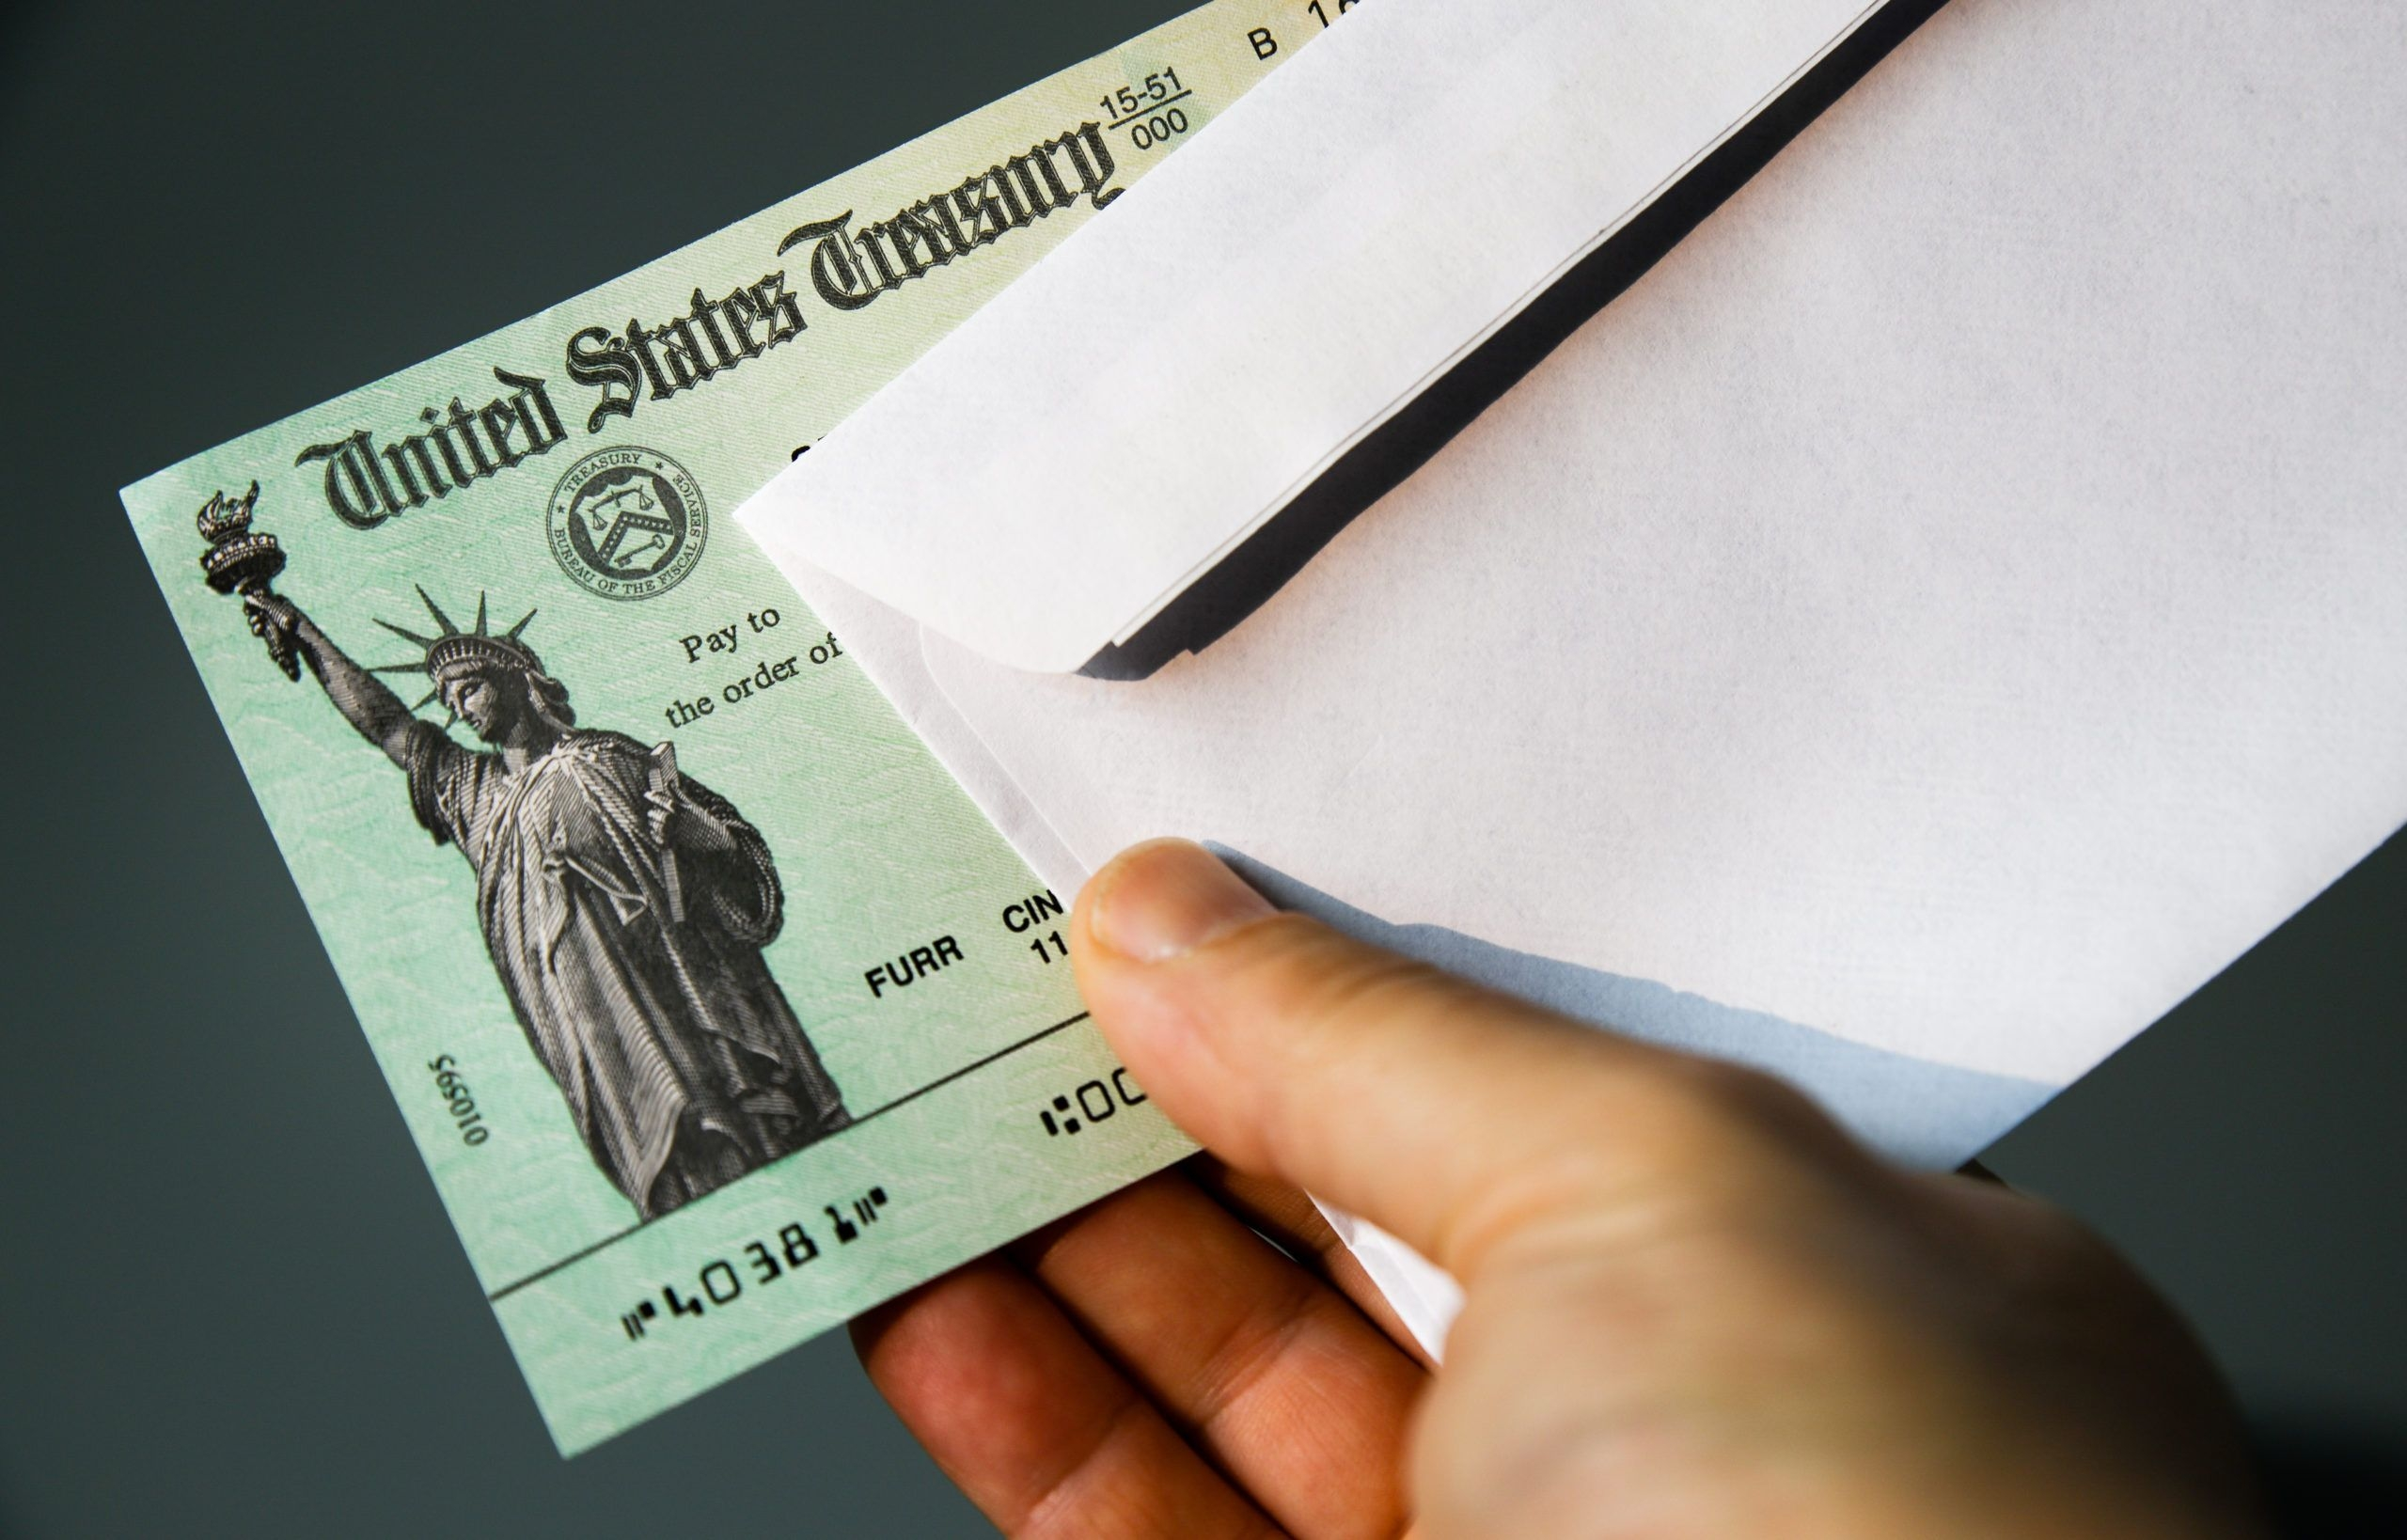 Stimulus Money For Ssi Recipients - What You Need To Know